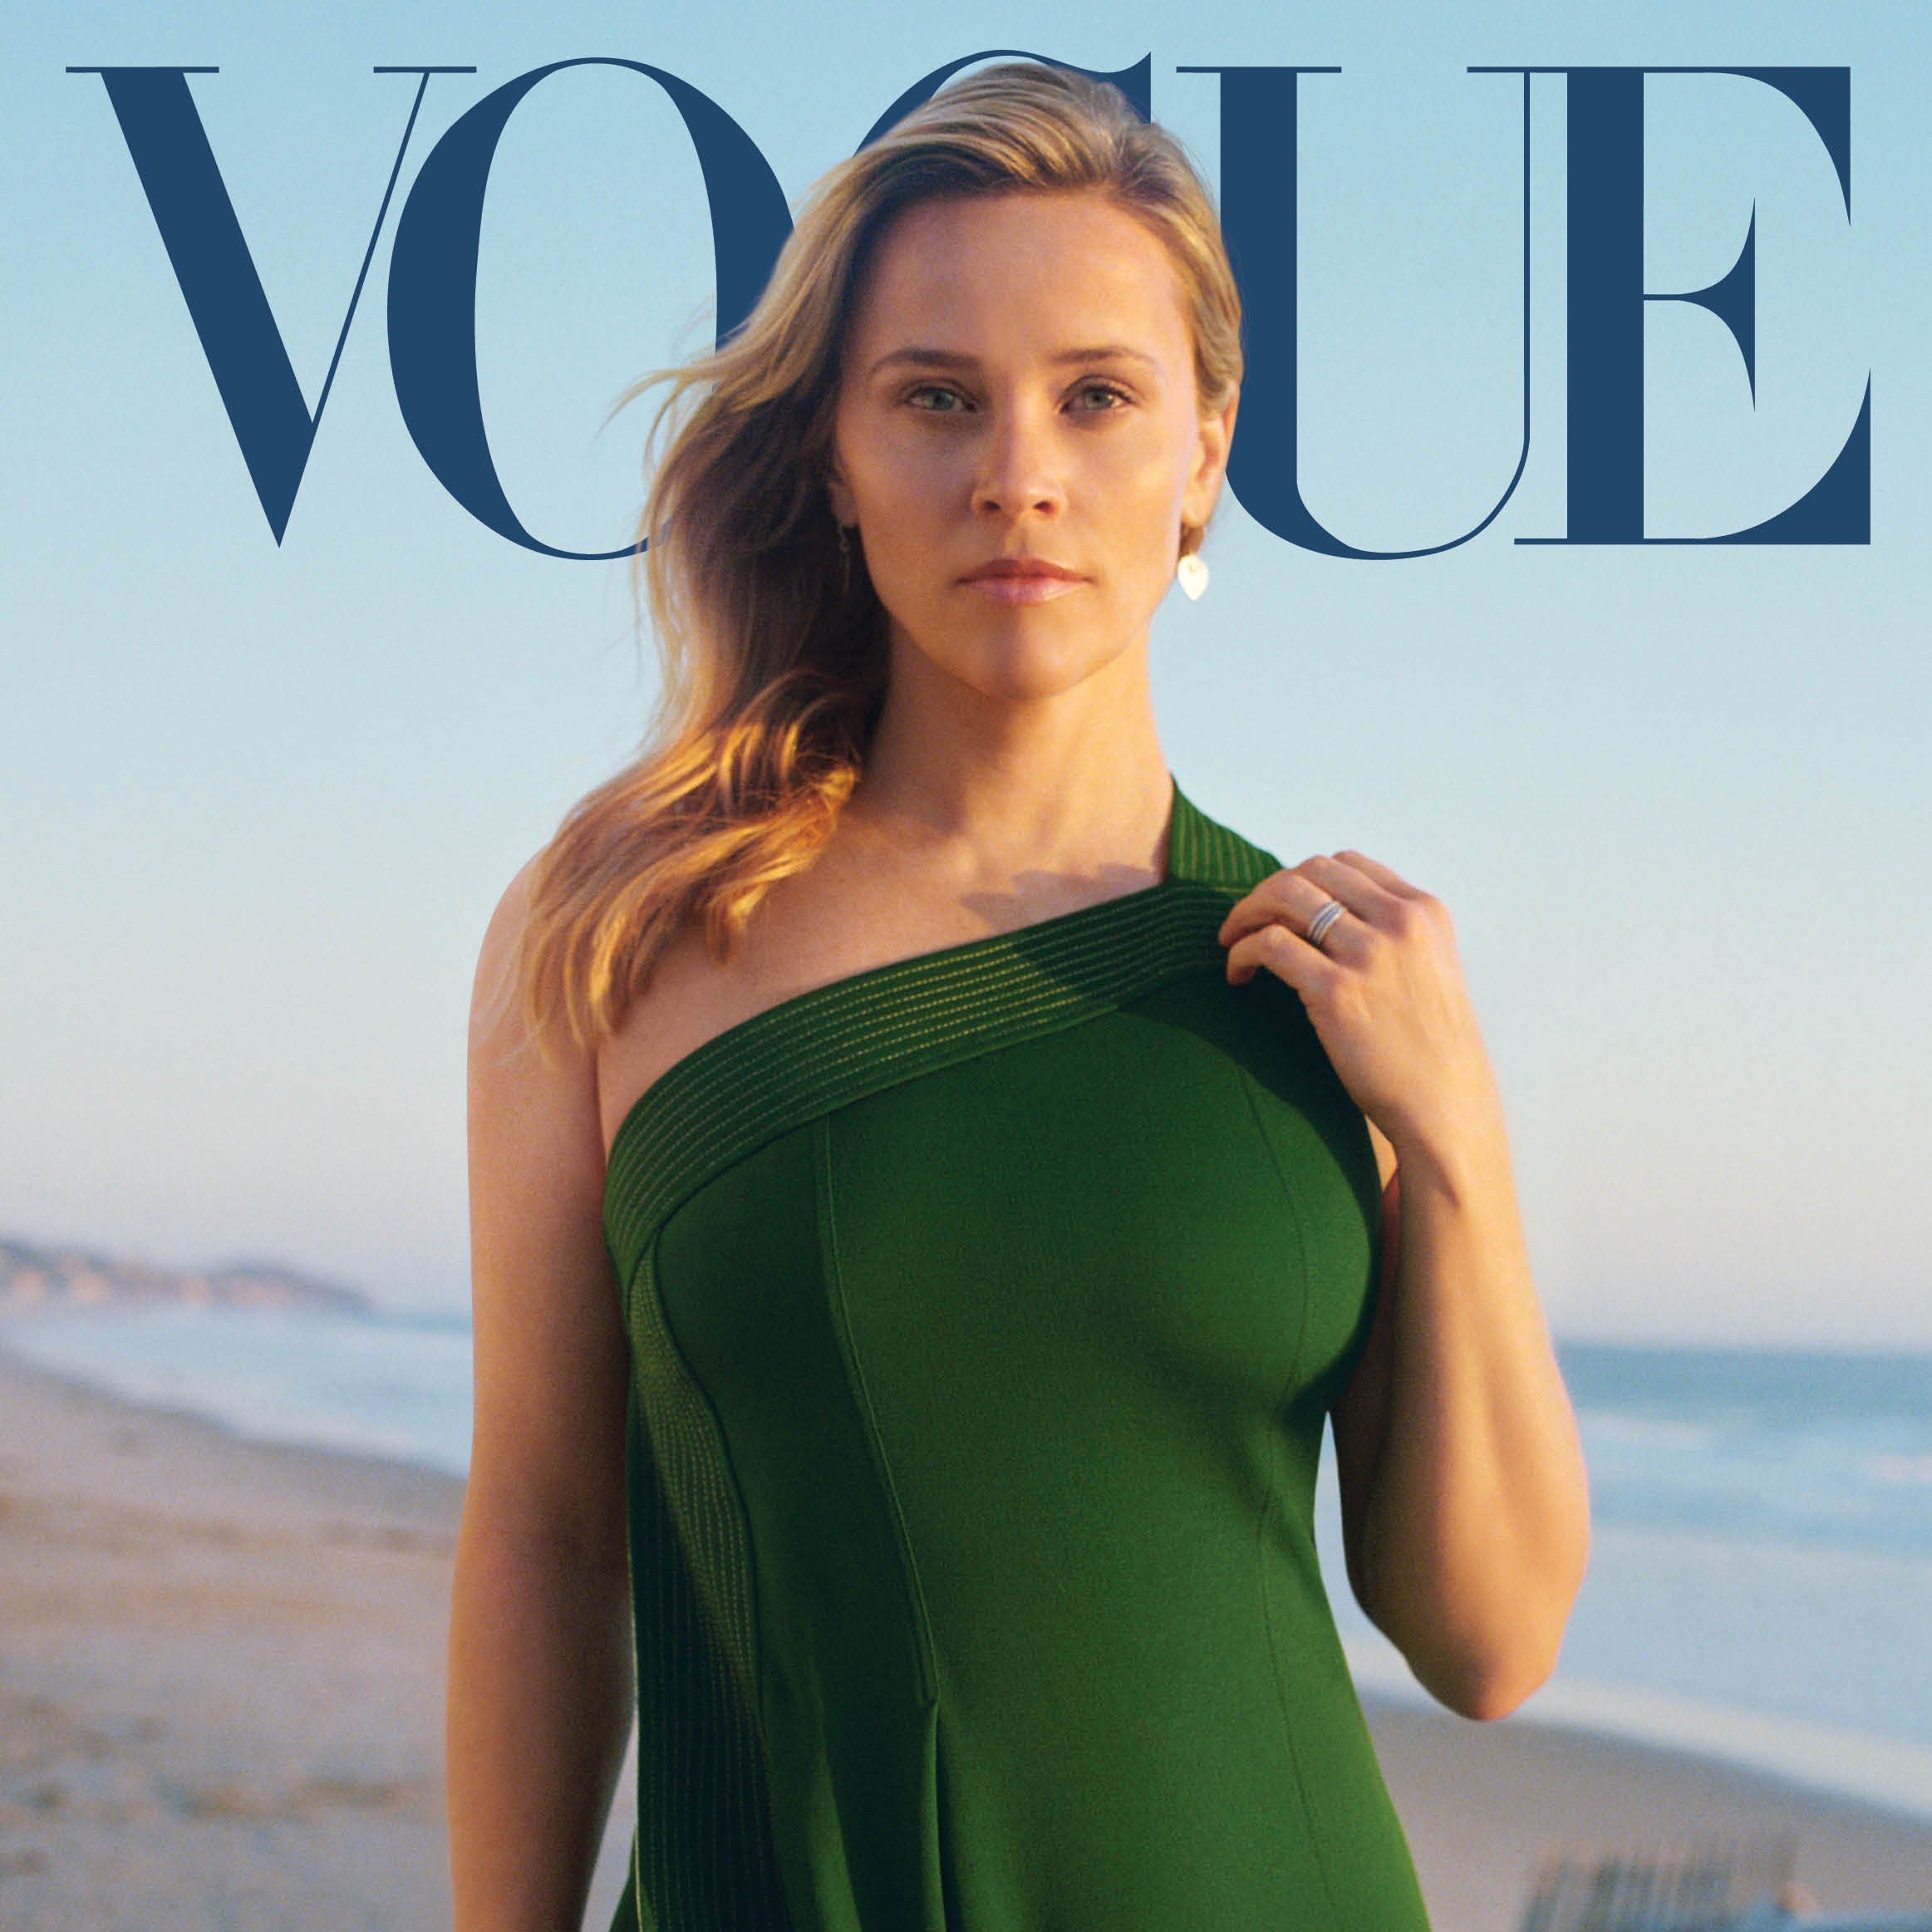 reese witherspoon vogue